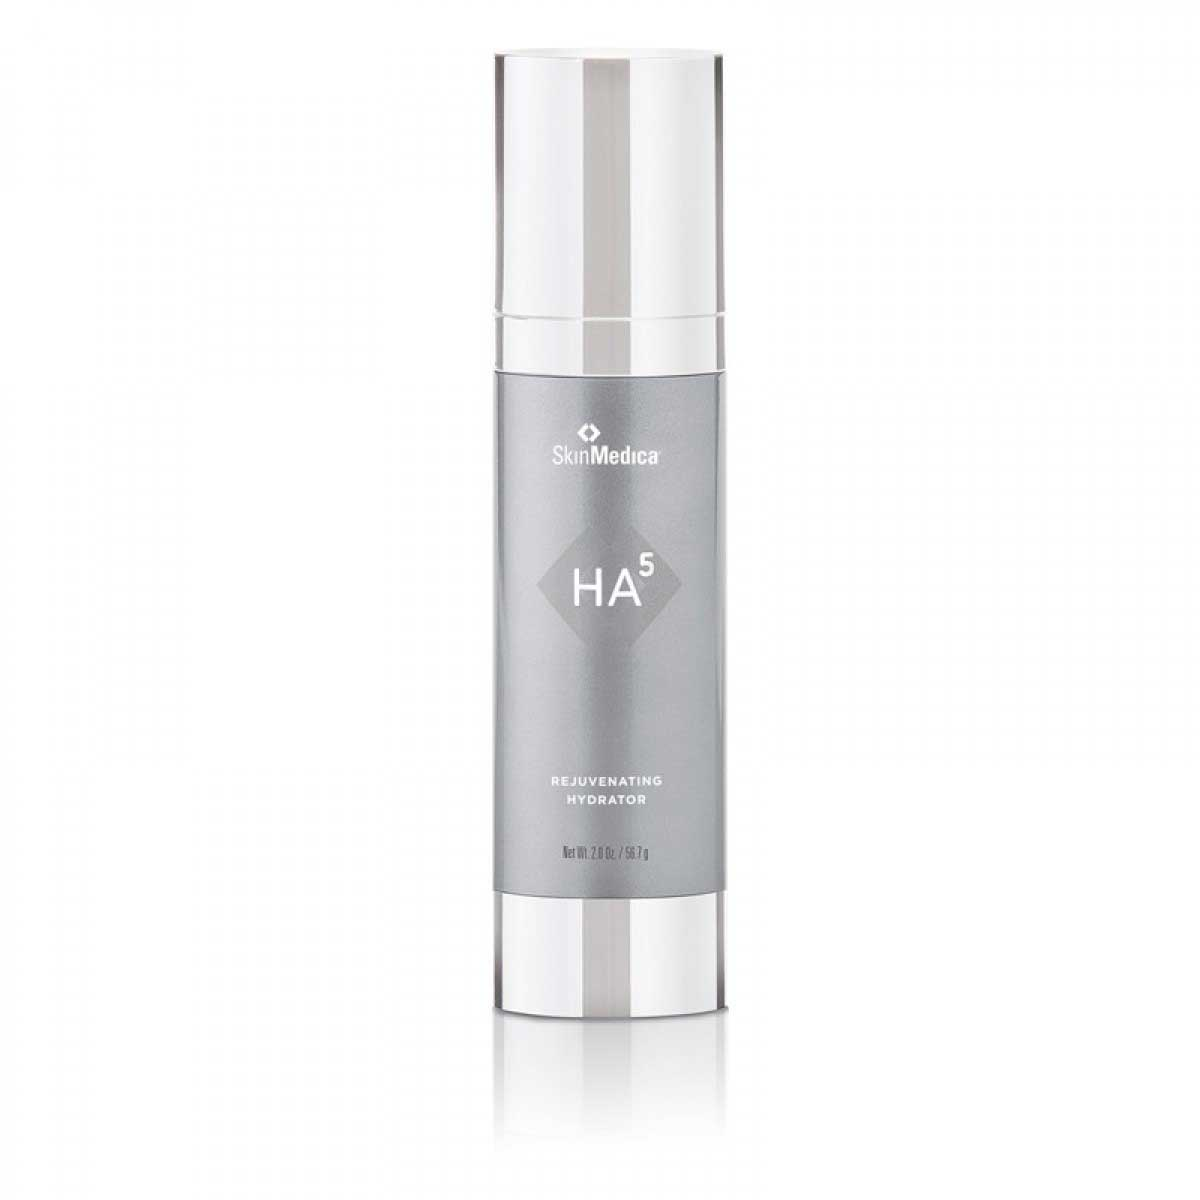 HA5 for Hydration, Improvement of Fine Lines, and Skin Texture